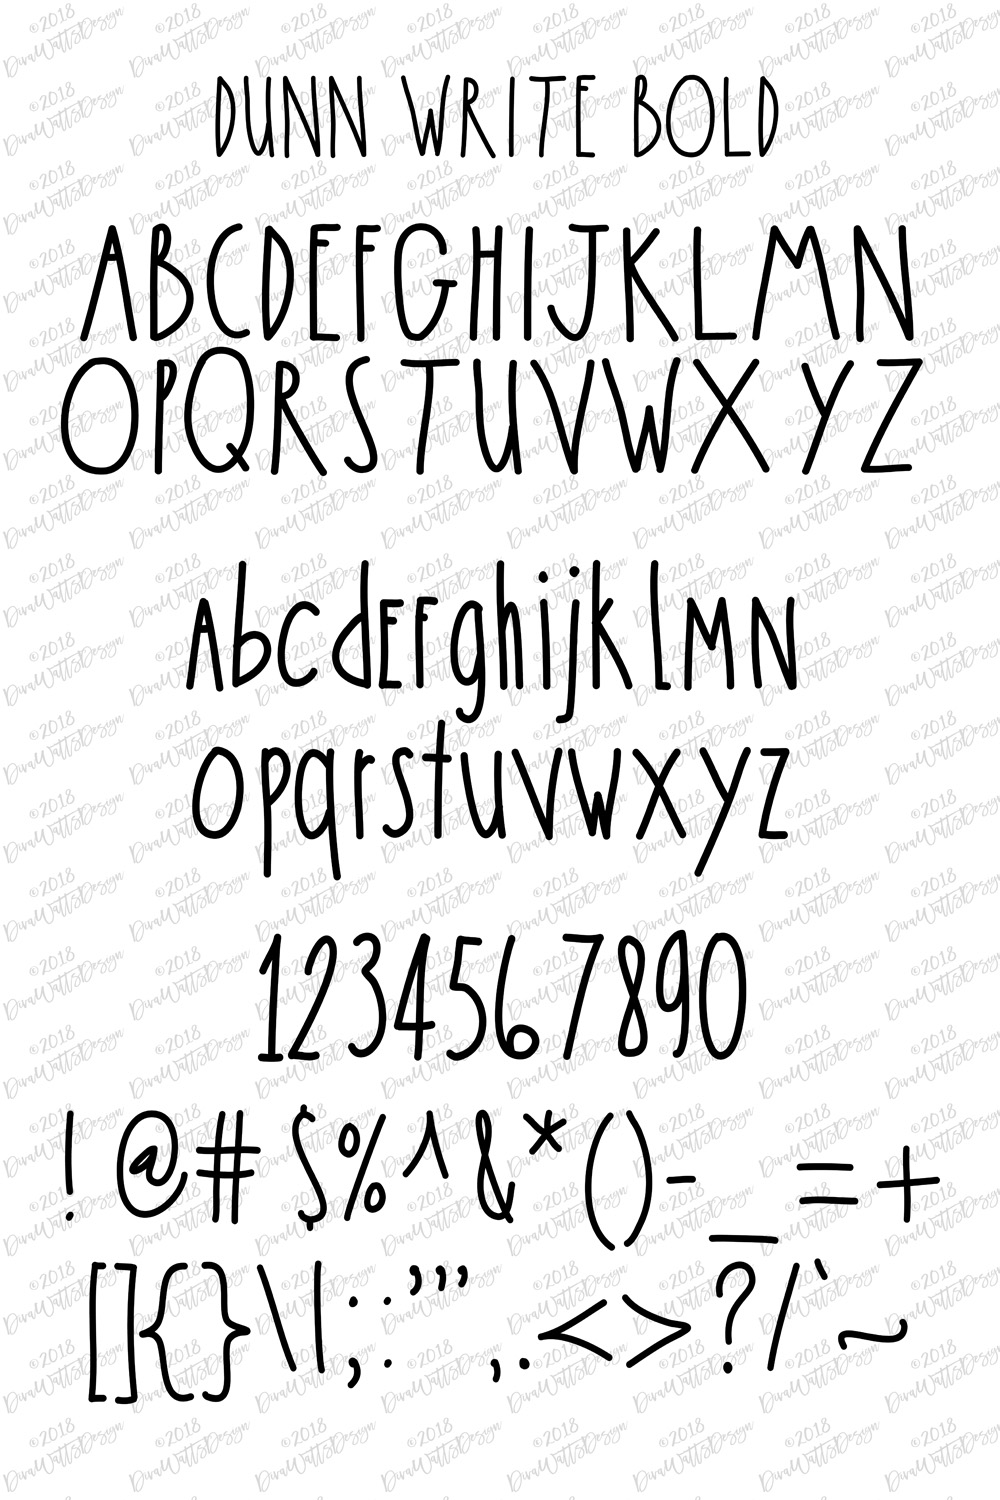 The Dunn Write Farmhouse Skinny Font Collection example image 3